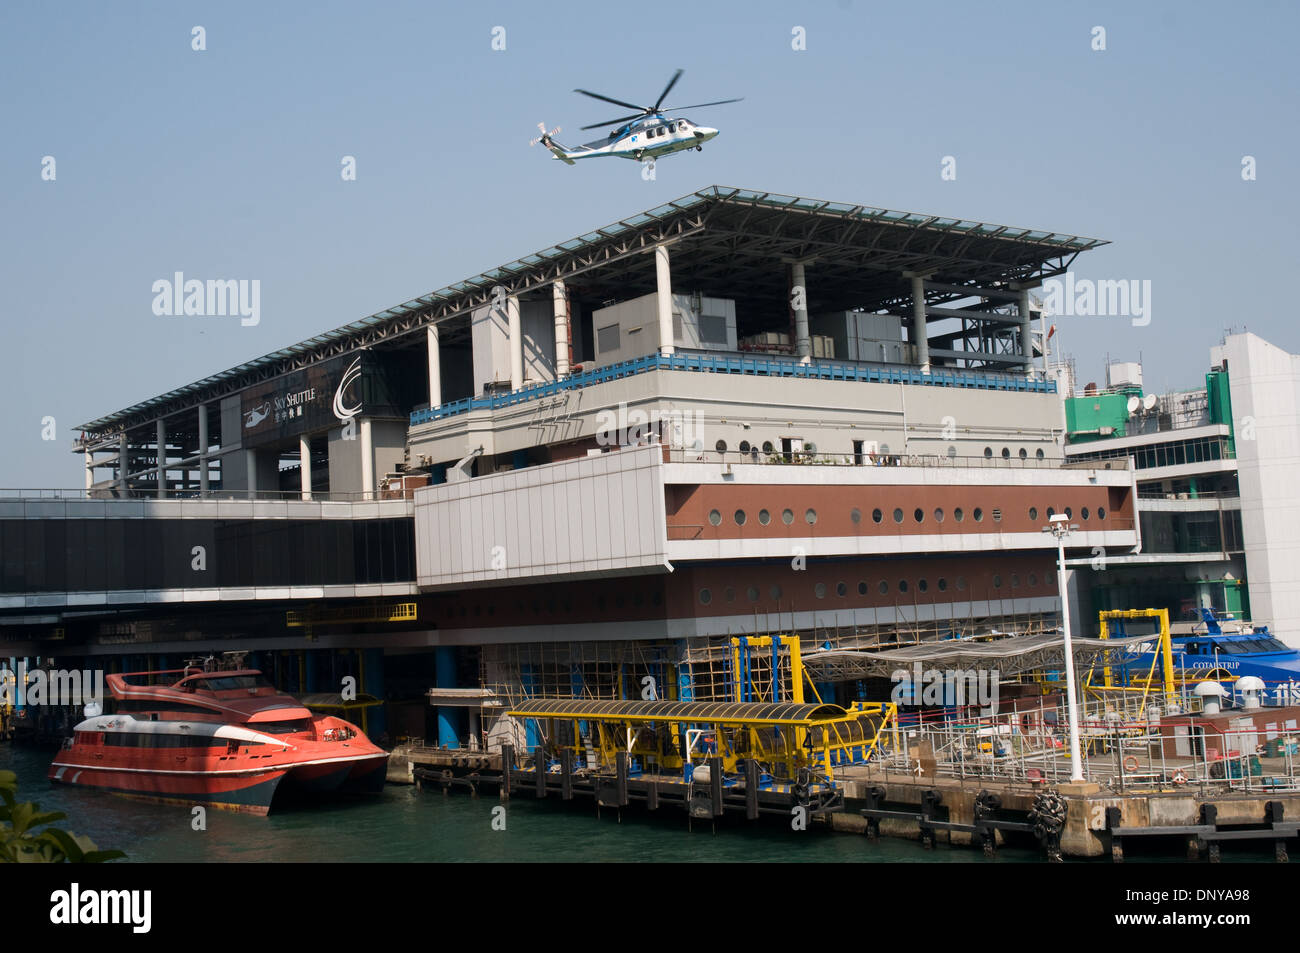 A helicopter lifts off from the Macau Ferry terminal building to fly to Macau. Moored alongside the building are - Stock Image